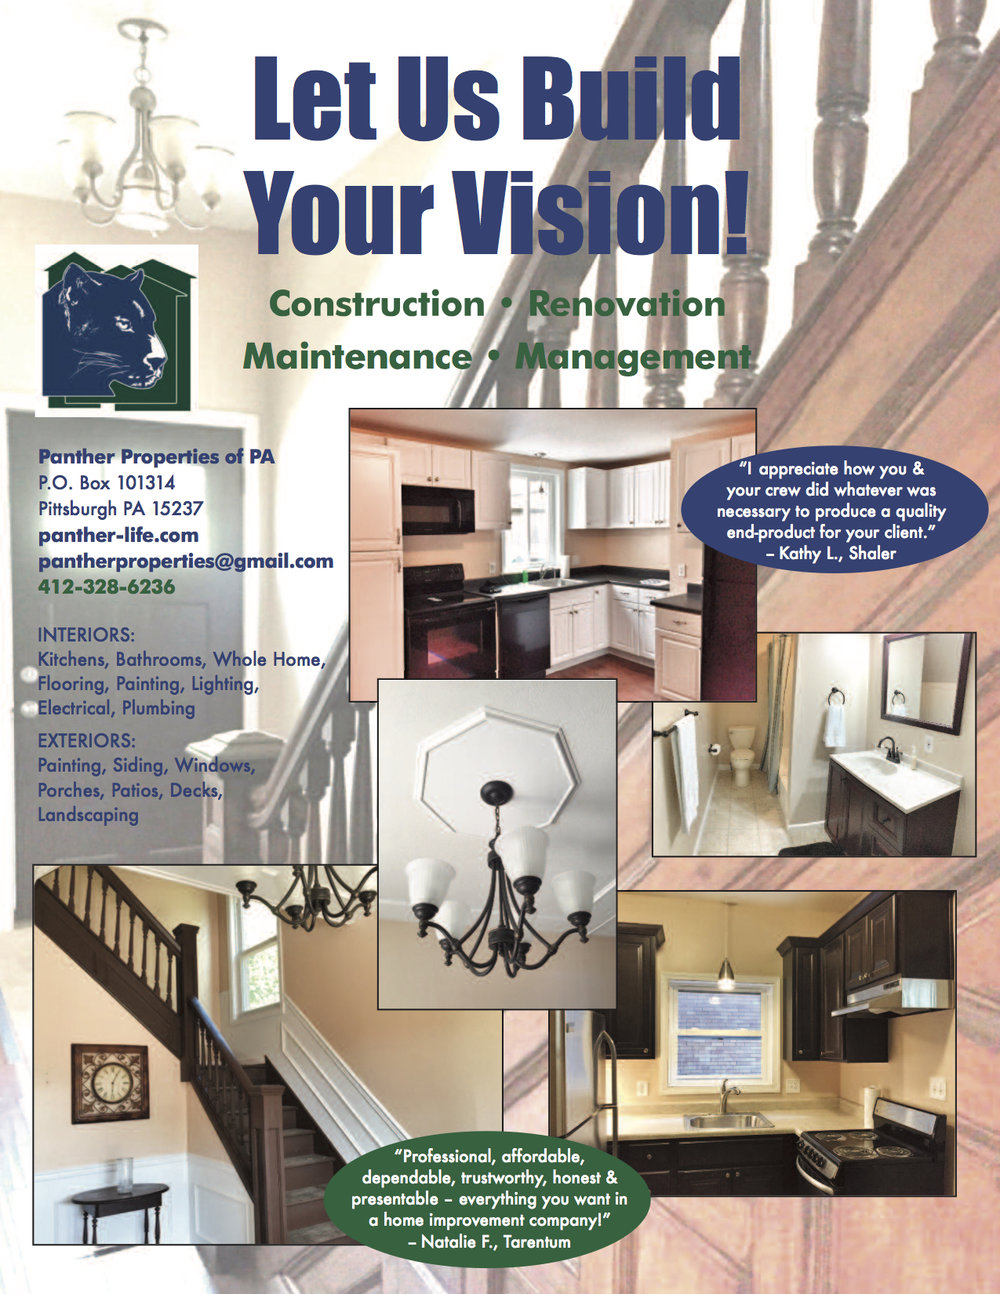 Panther Properties of PA Brochure